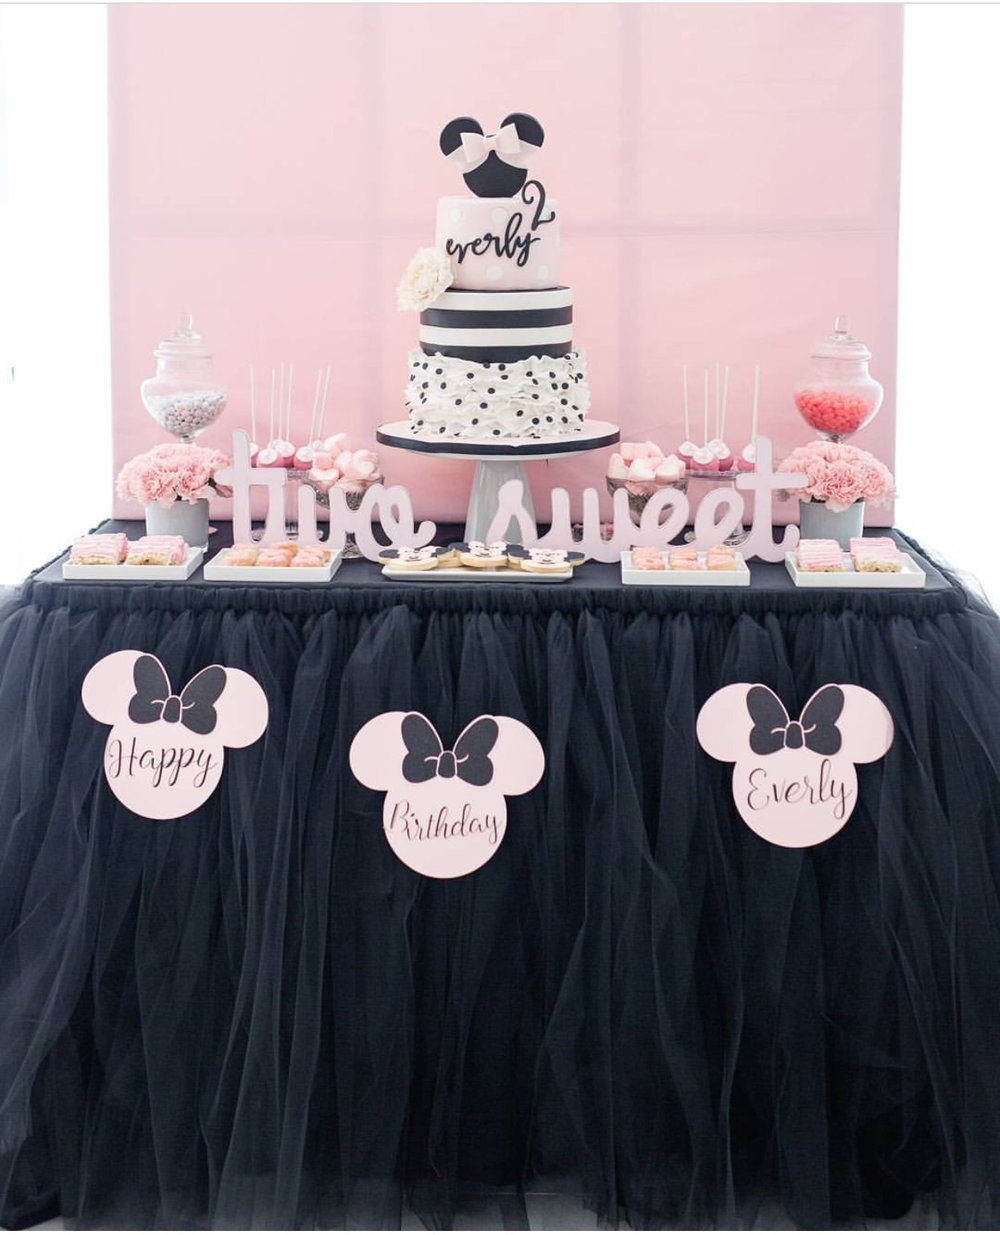 LuLu Cake Boutique created this striped, polka  dot confectionery dream